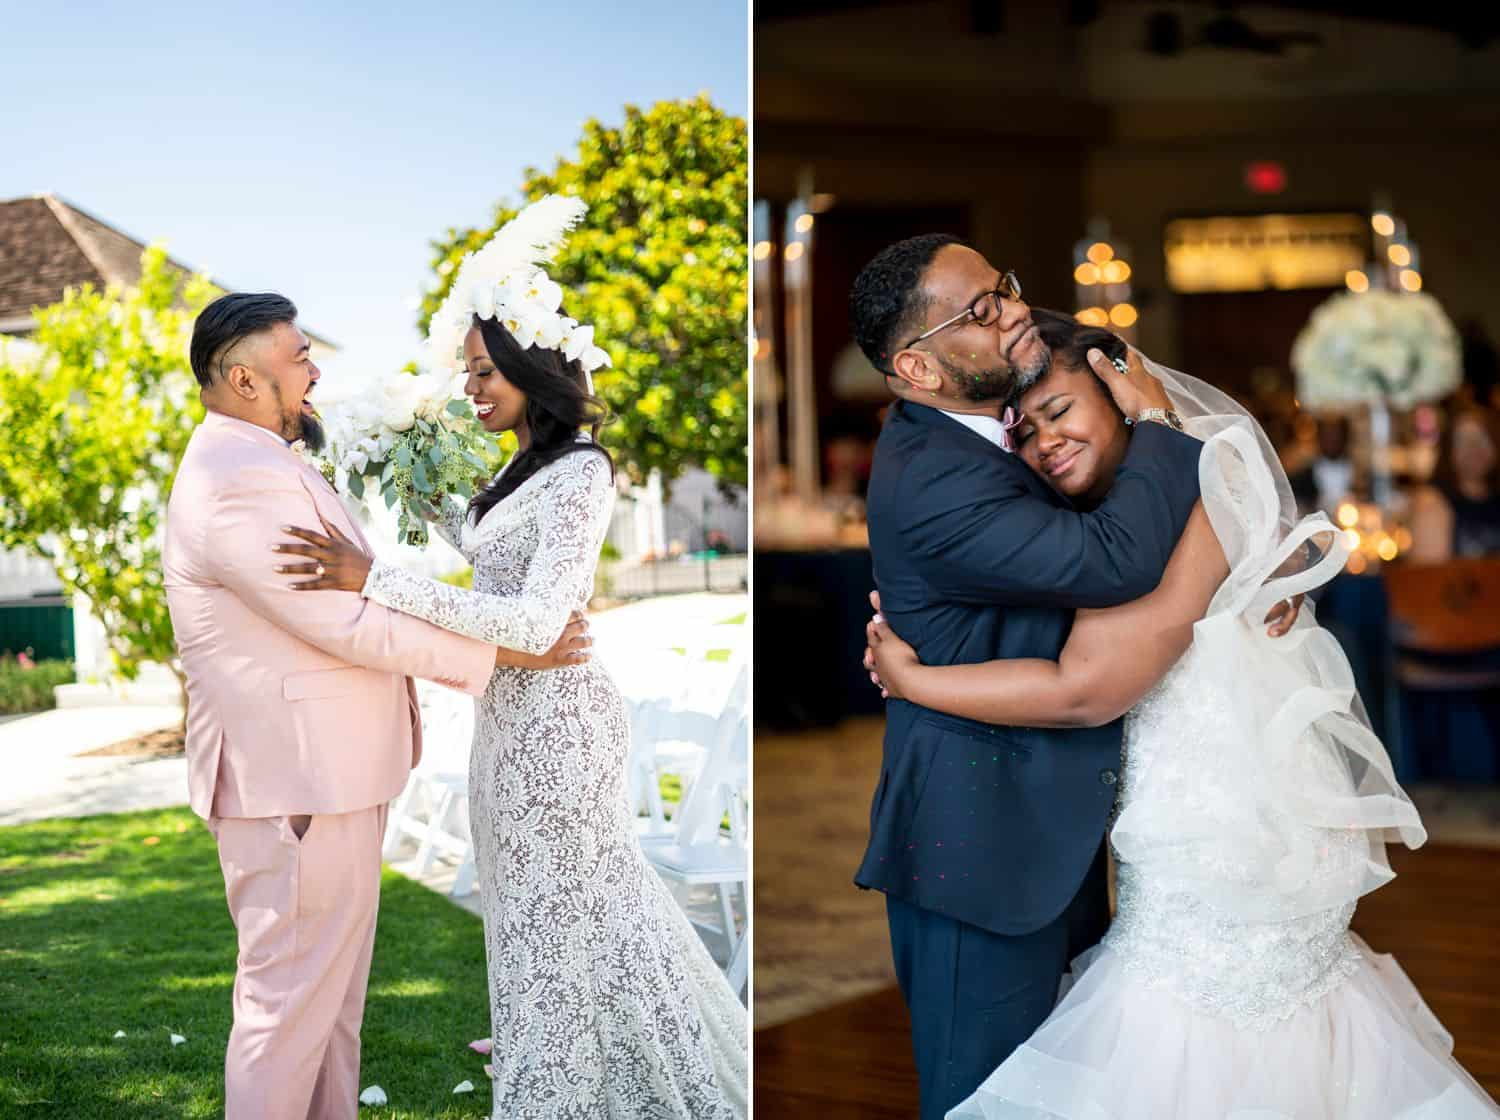 A groom in a pink suit hold a white-gowned bride in his arms. A groom in a navy tux embraces his bride who wears a white dress.